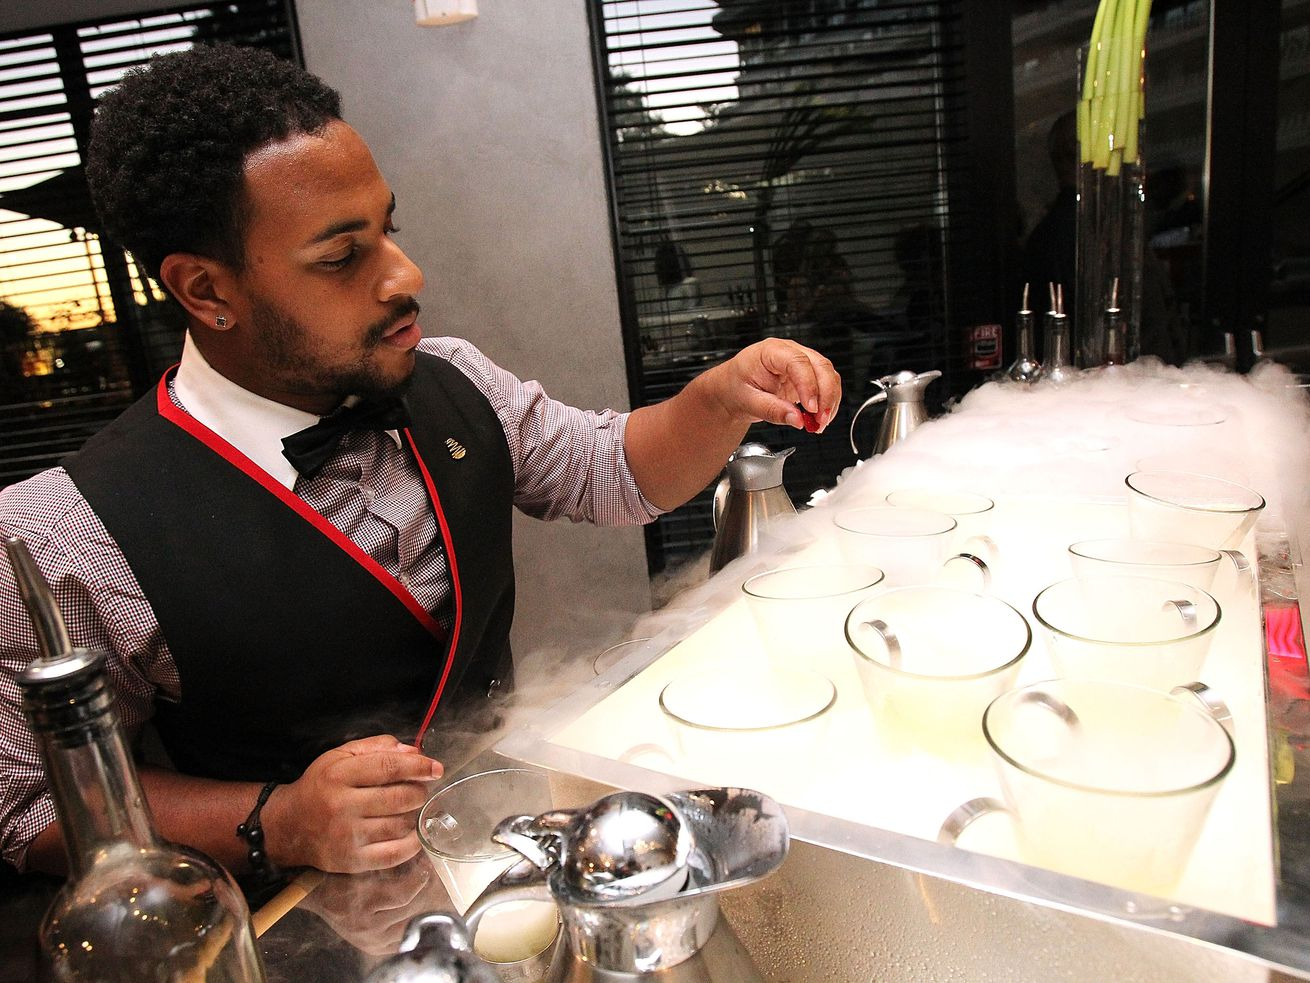 A bartender prepare cocktails at the Kingbird restaurant in the Watergate Hotel on June 14, 2016, in Washington, DC.